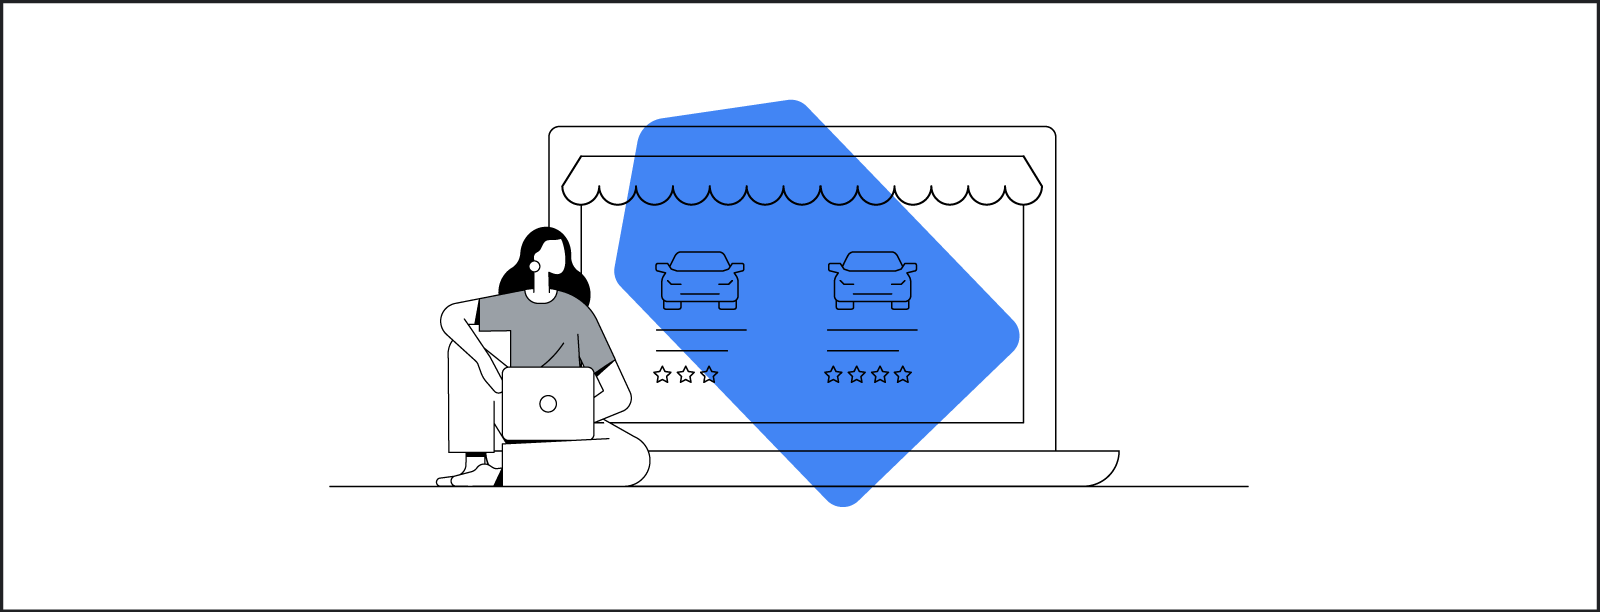 A stylized illustration of a woman shopping on a laptop while sitting cross-legged in front of a larger-than-life laptop with a screen that appears to be a brick-and-mortar storefront.